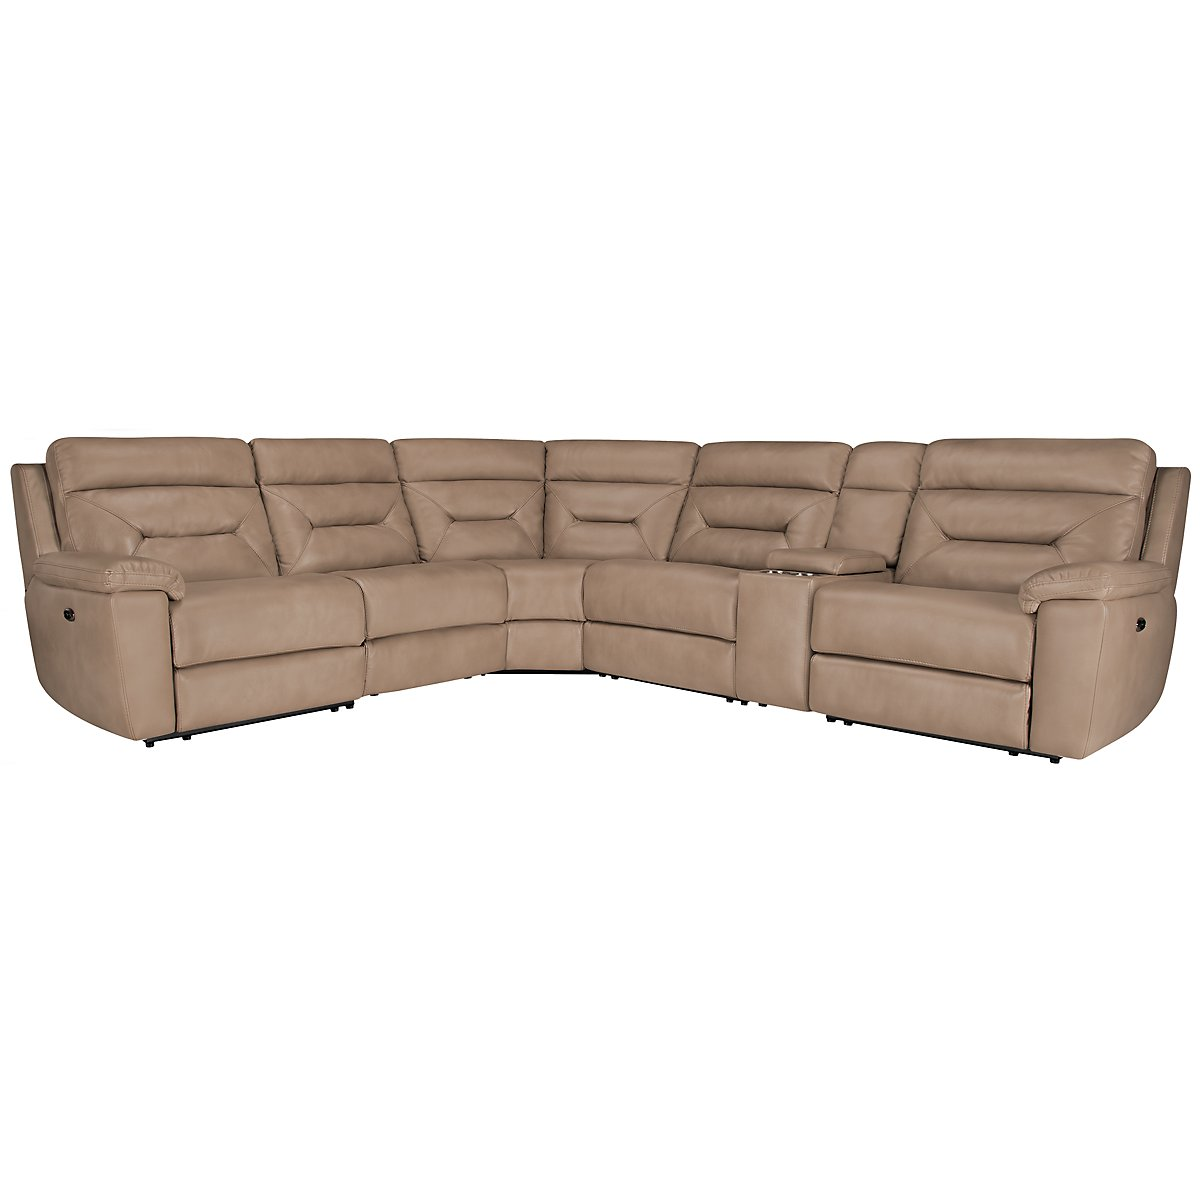 Phoenix Dk Beige Microfiber Small Two-Arm Power Reclining Sectional